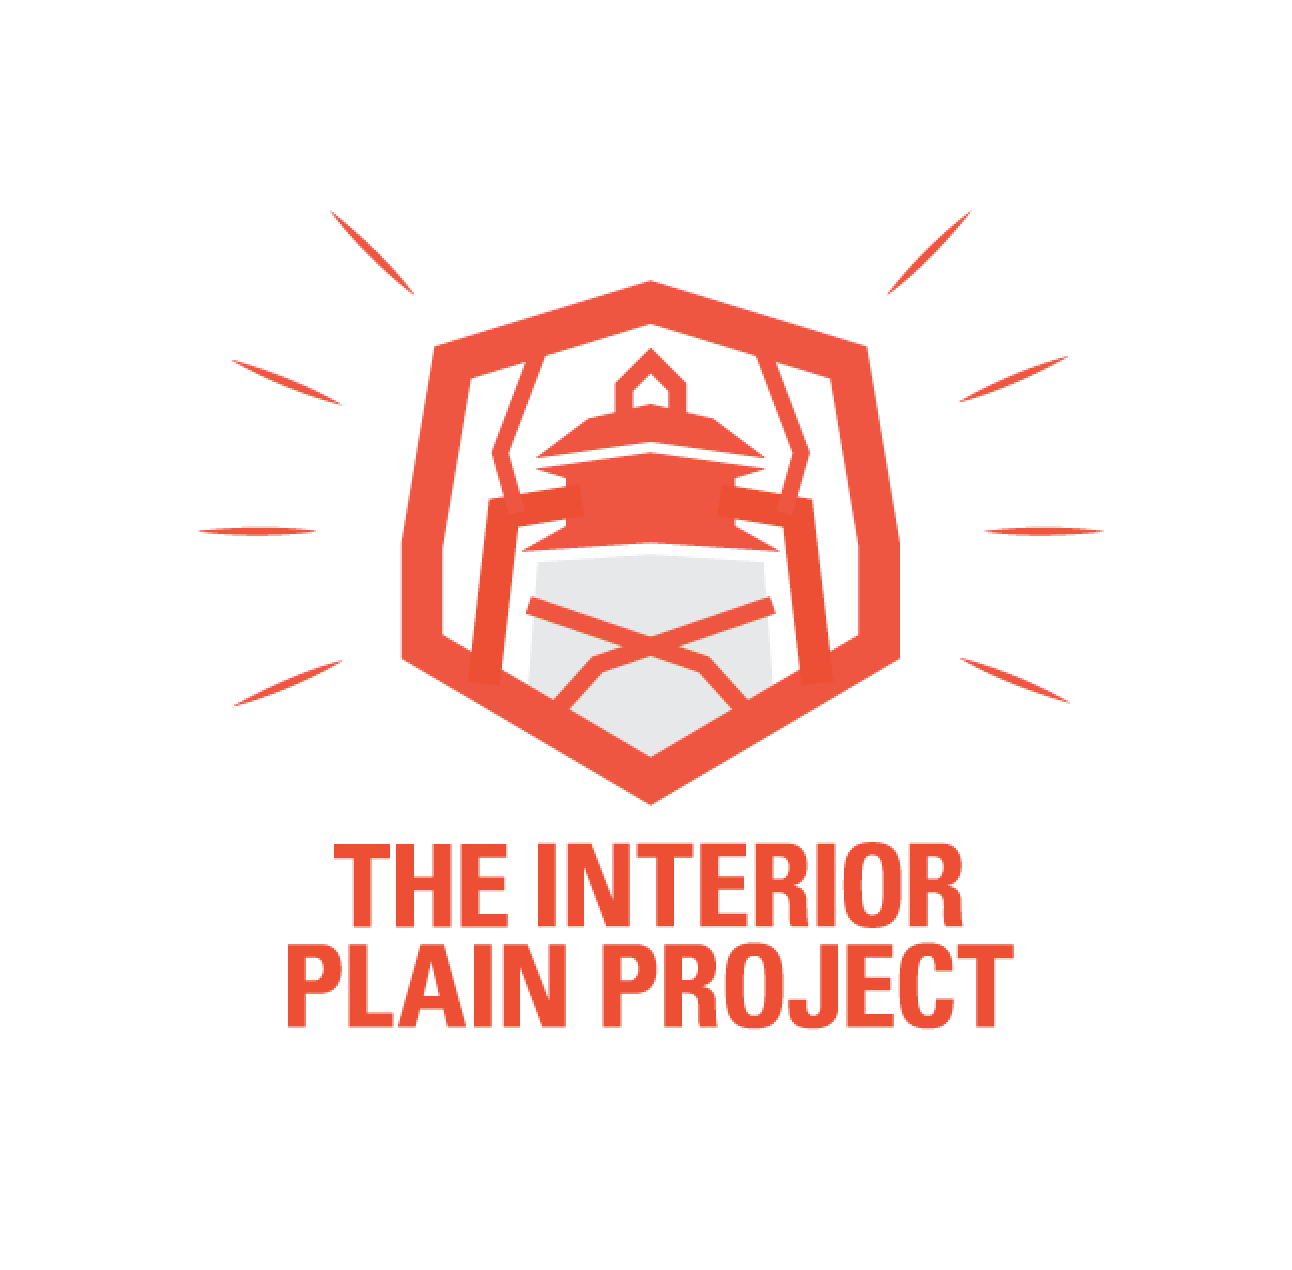 The Interior Plain Project